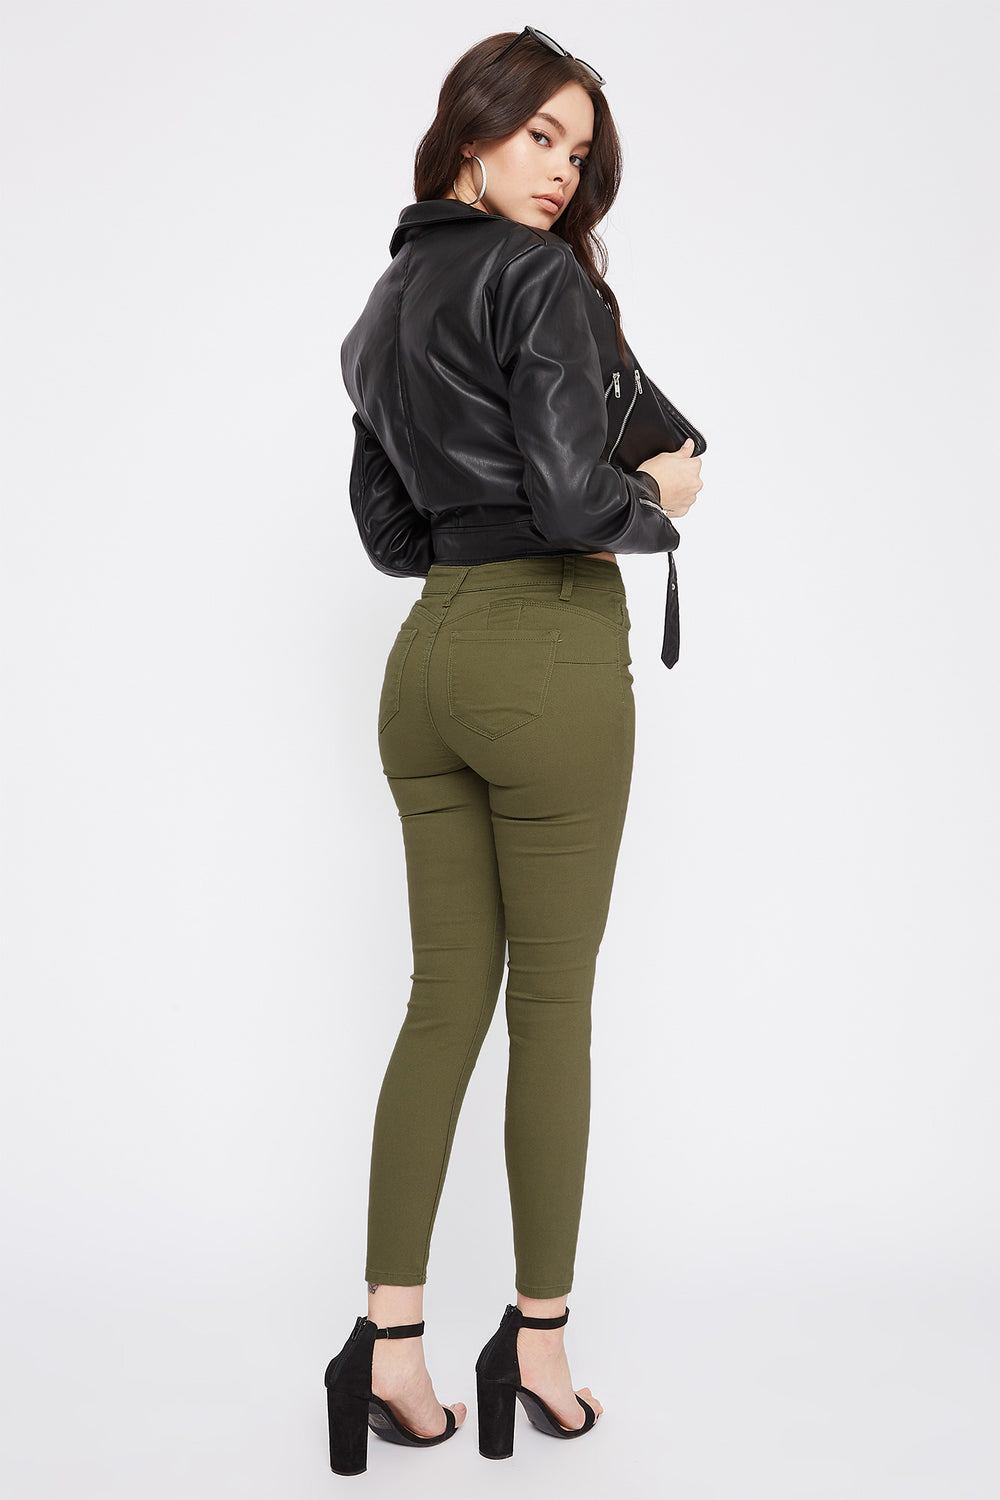 Butt, I Love You Solid High-Rise Push-Up Skinny Jean Dark Green